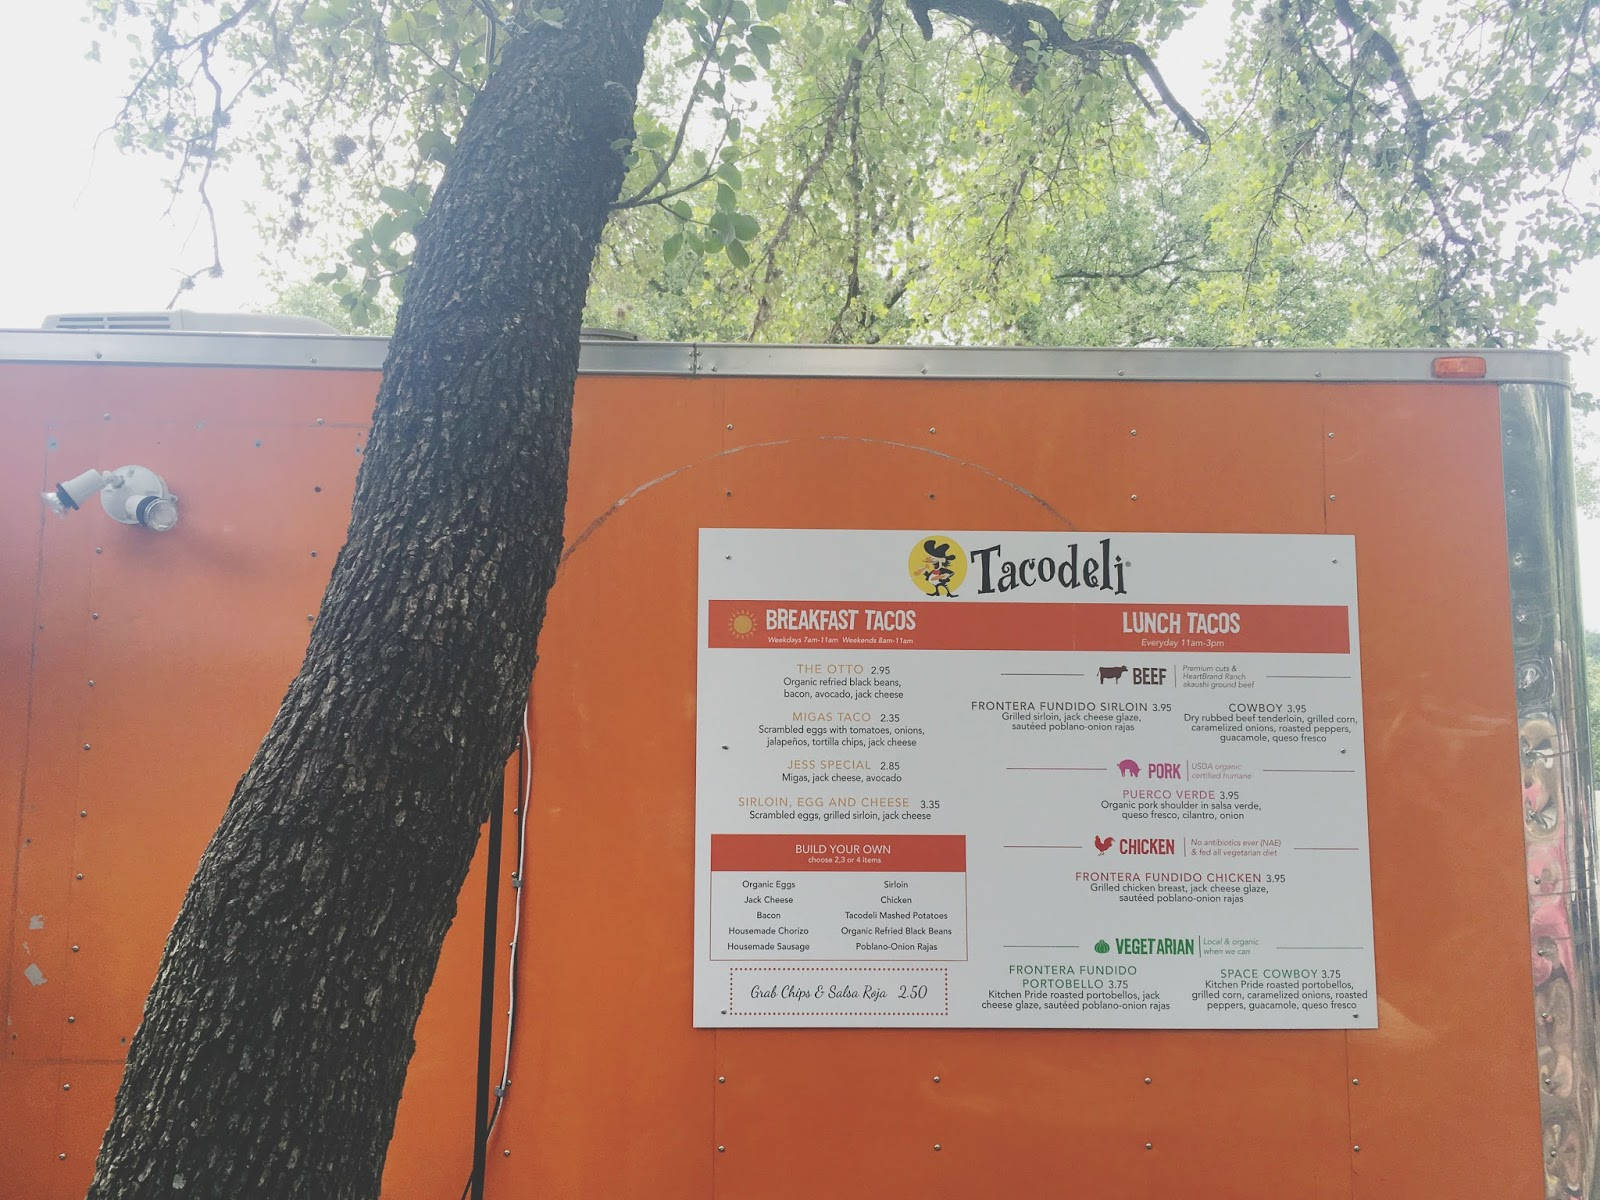 Tacodeli - a taco truck and restaurant located in Austin, Texas